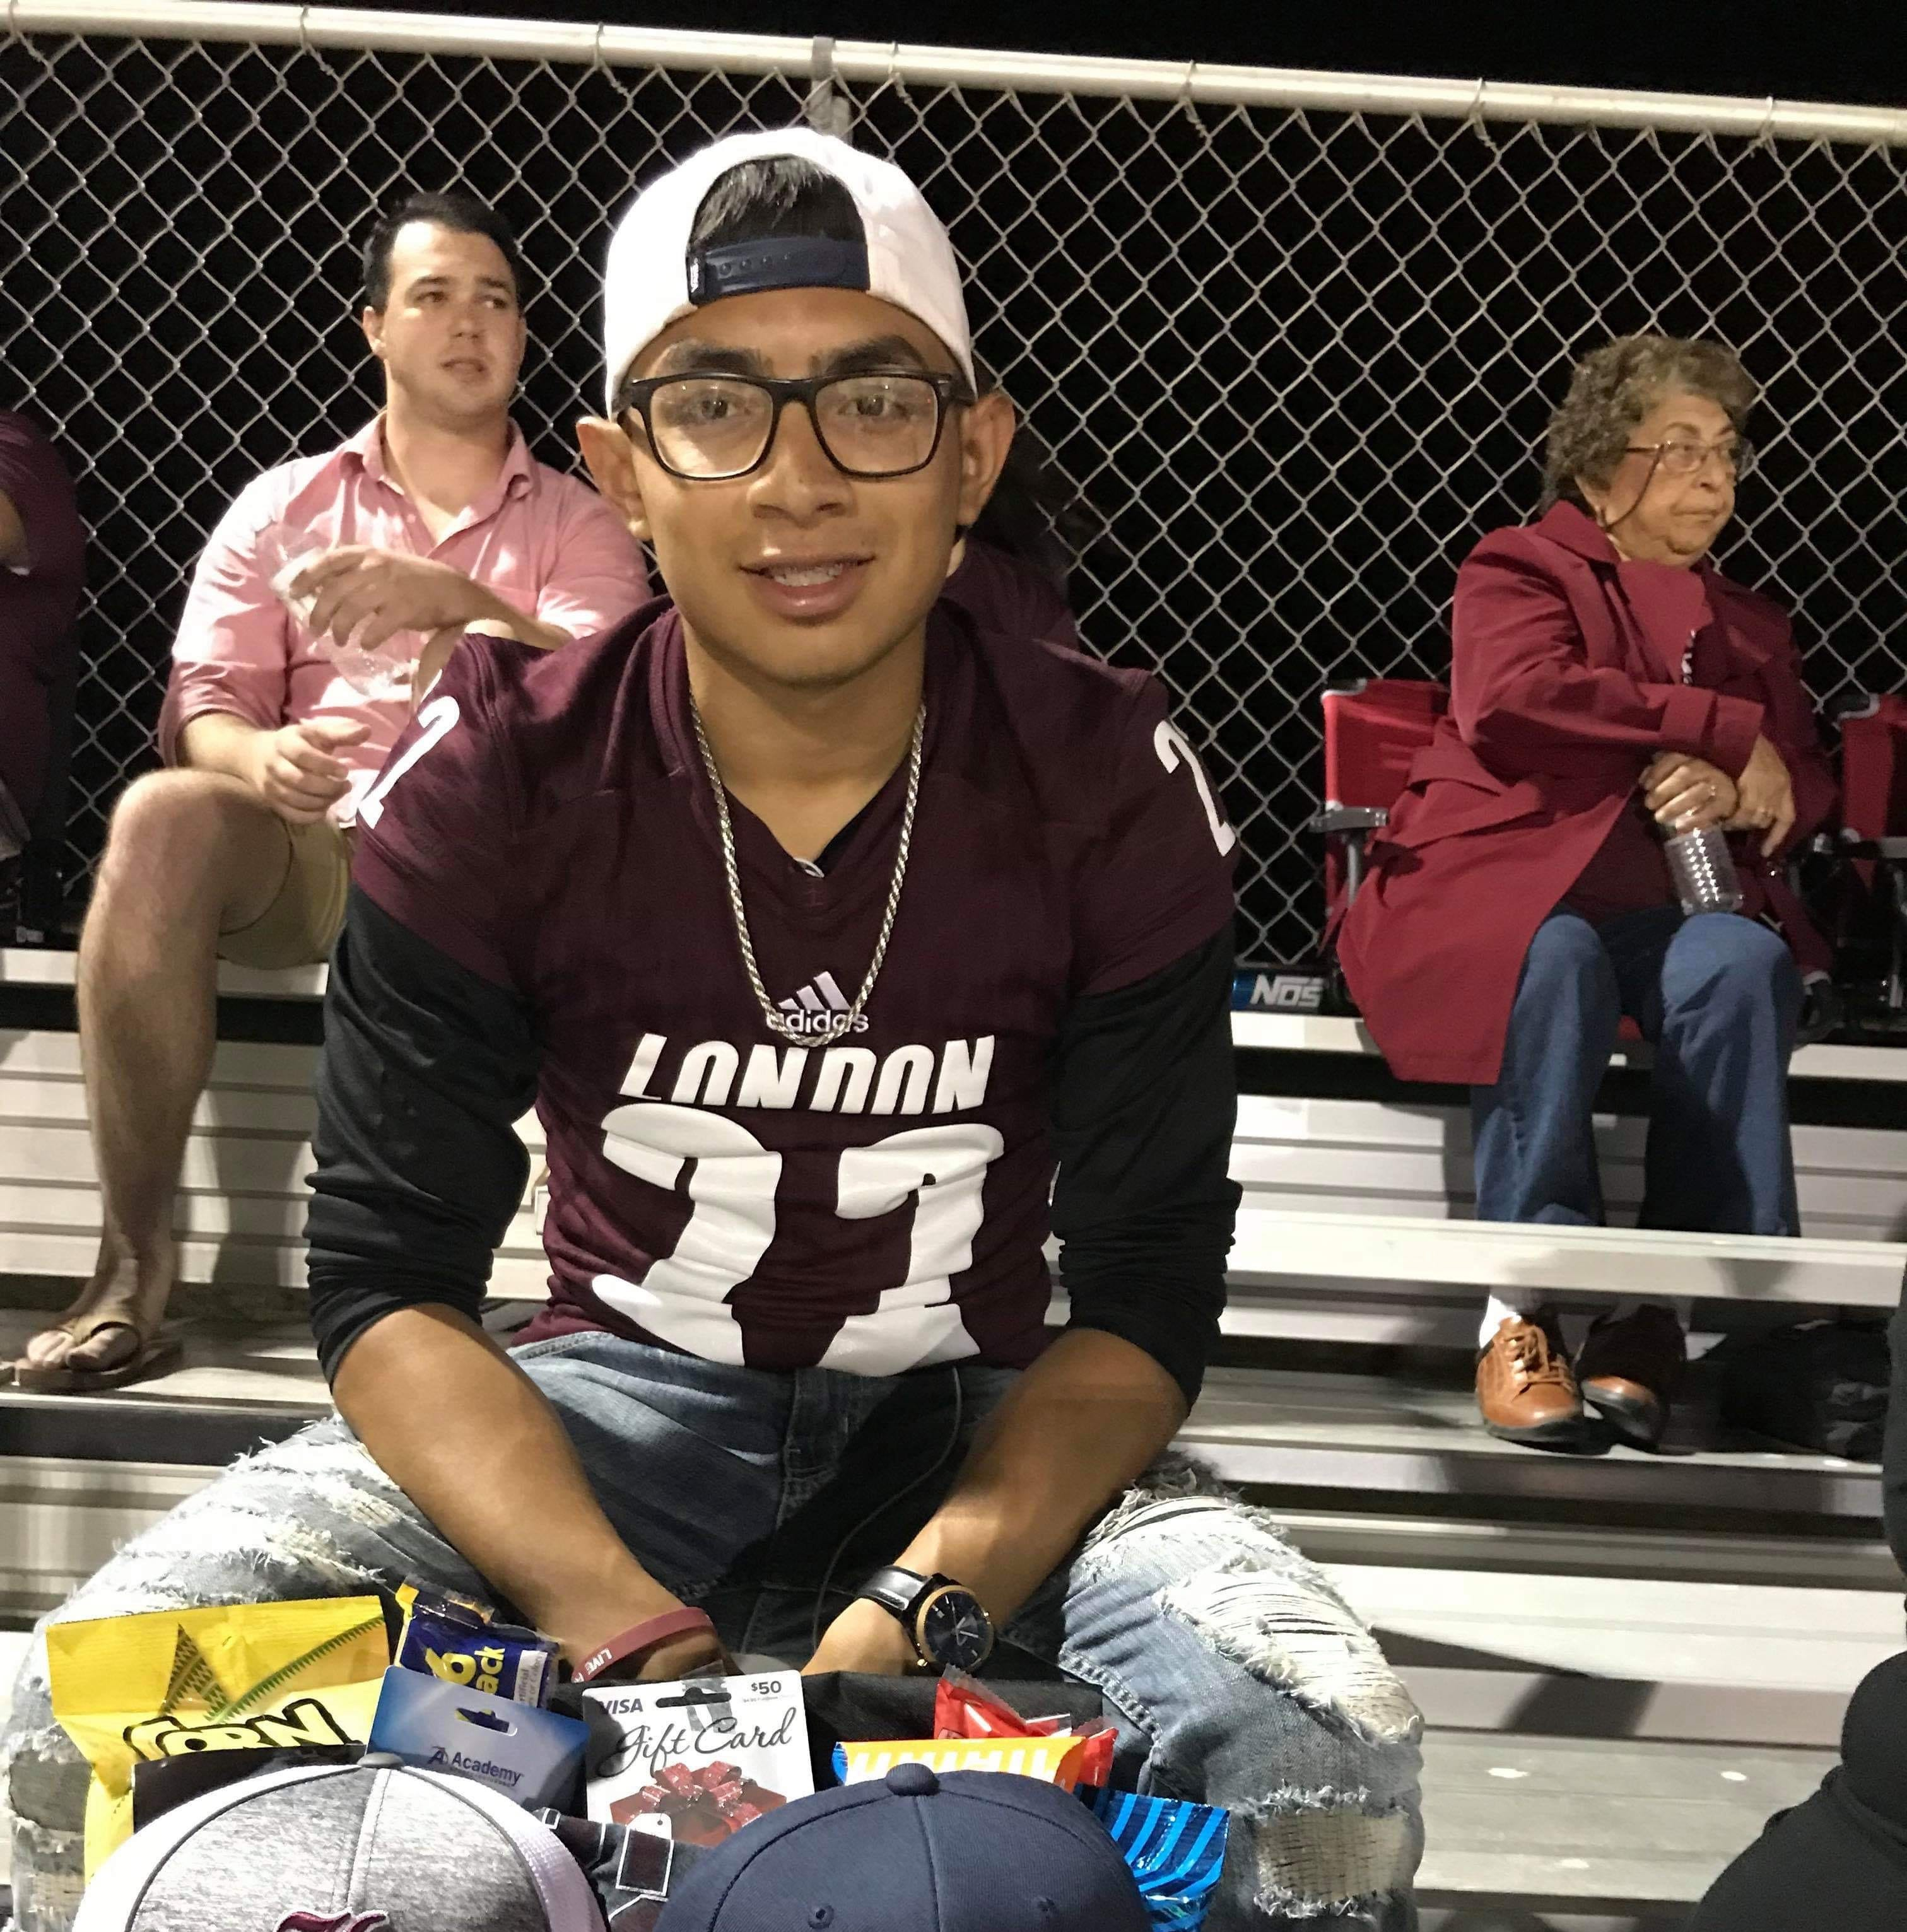 London team honors former player's family